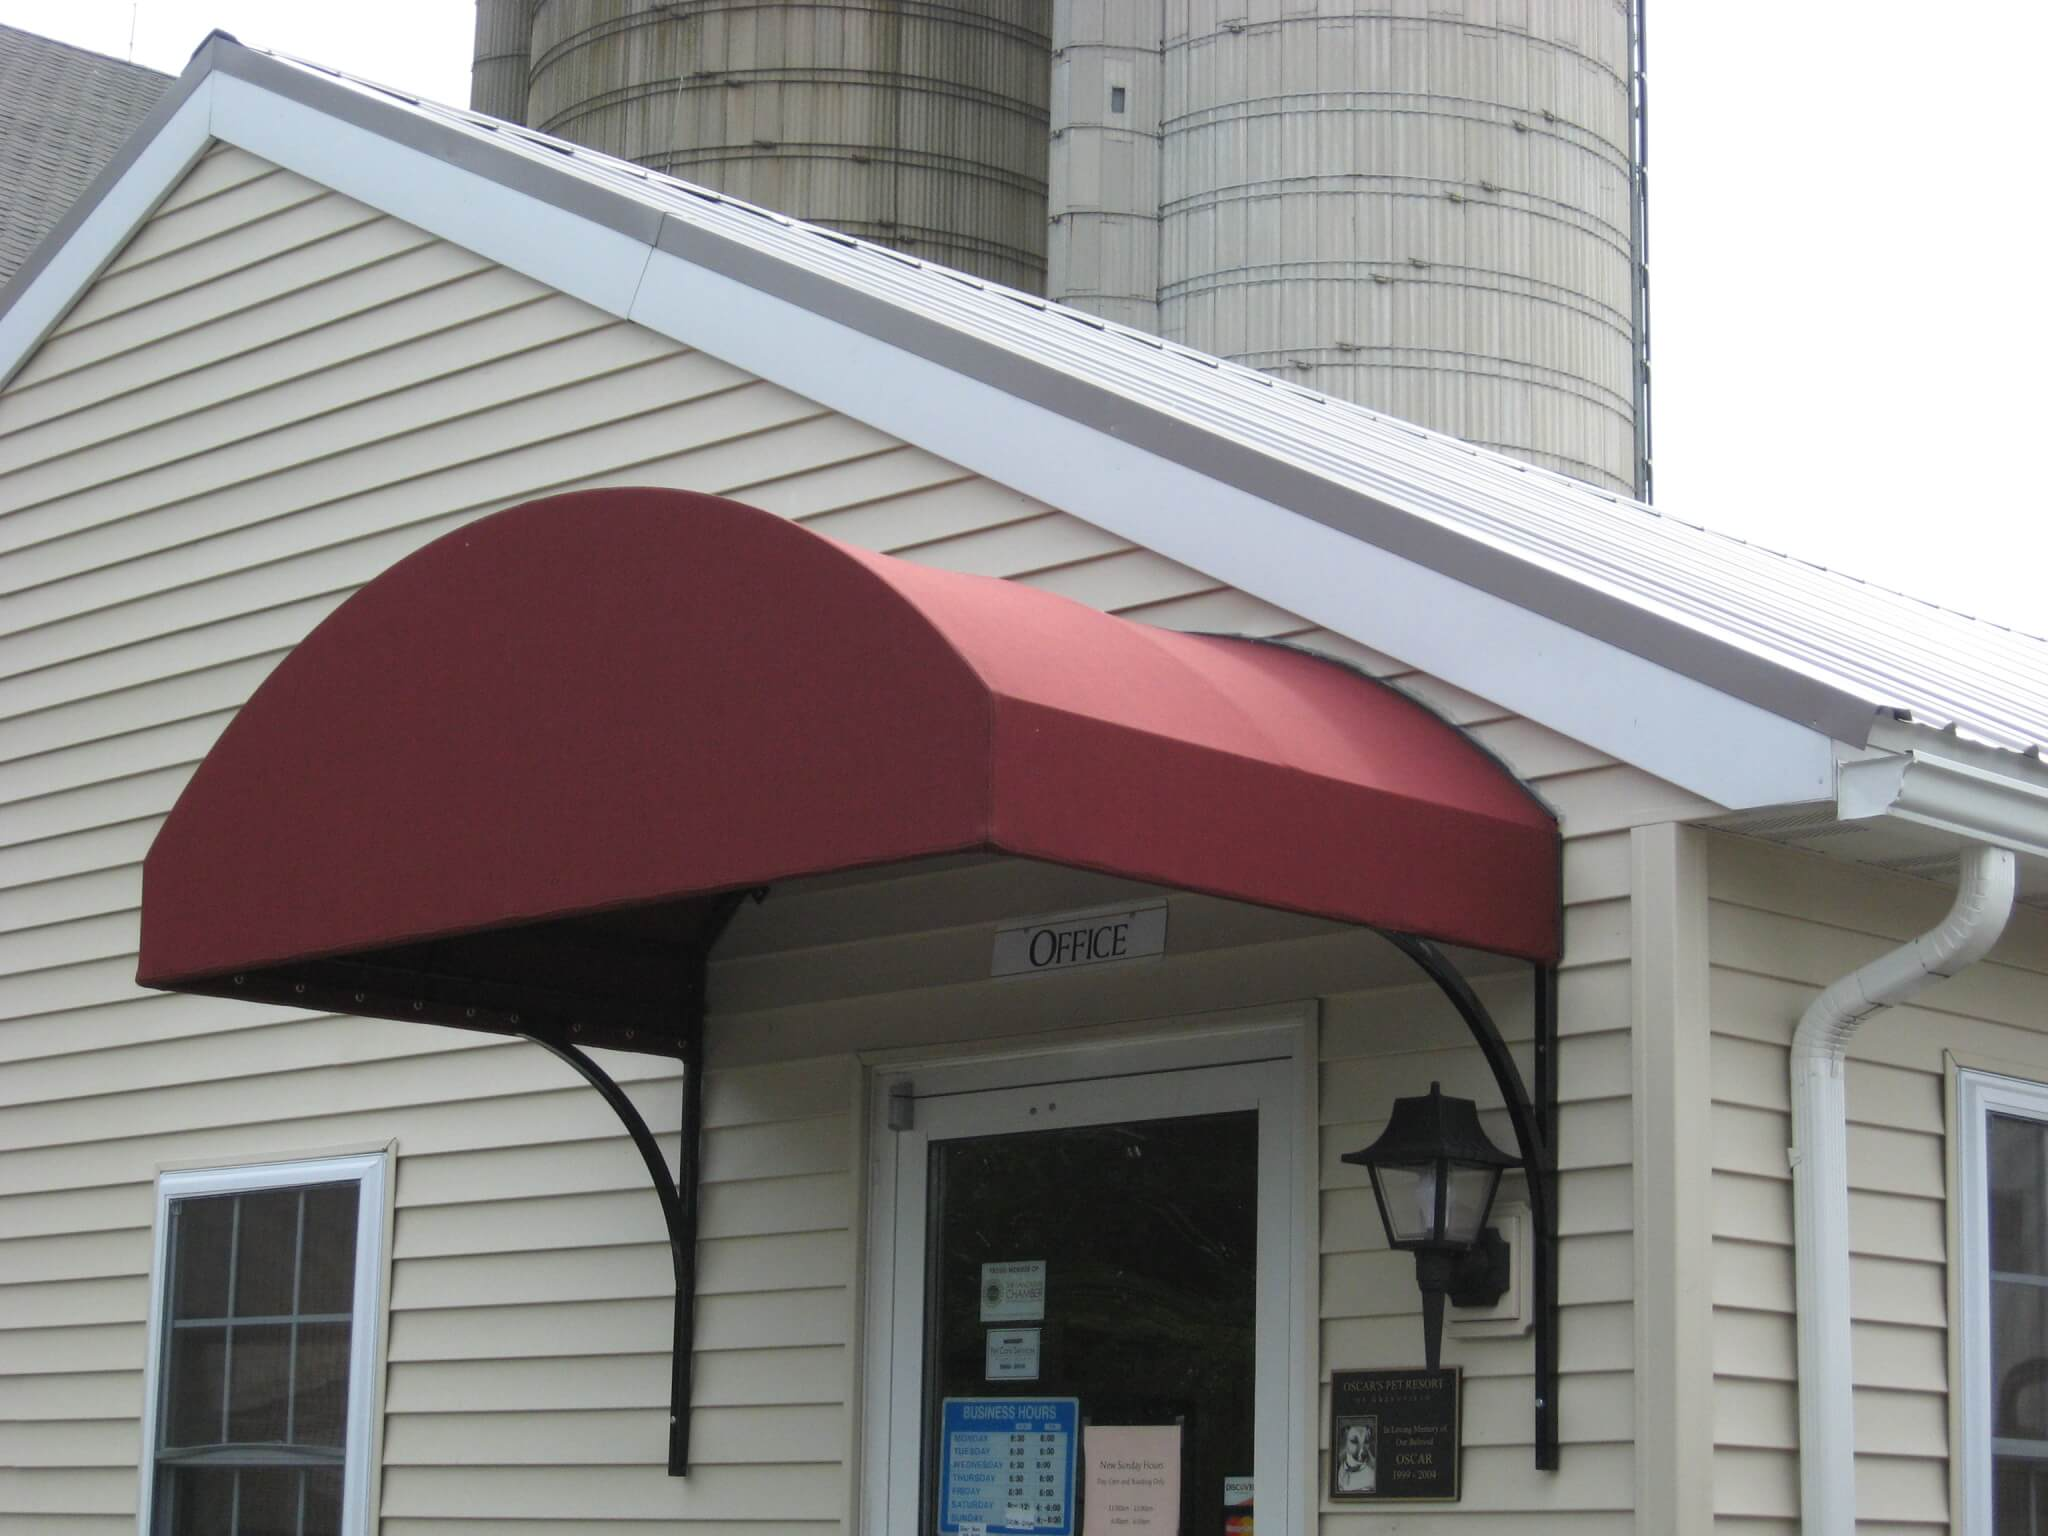 Arched canvas commercial awning installed over a door ...